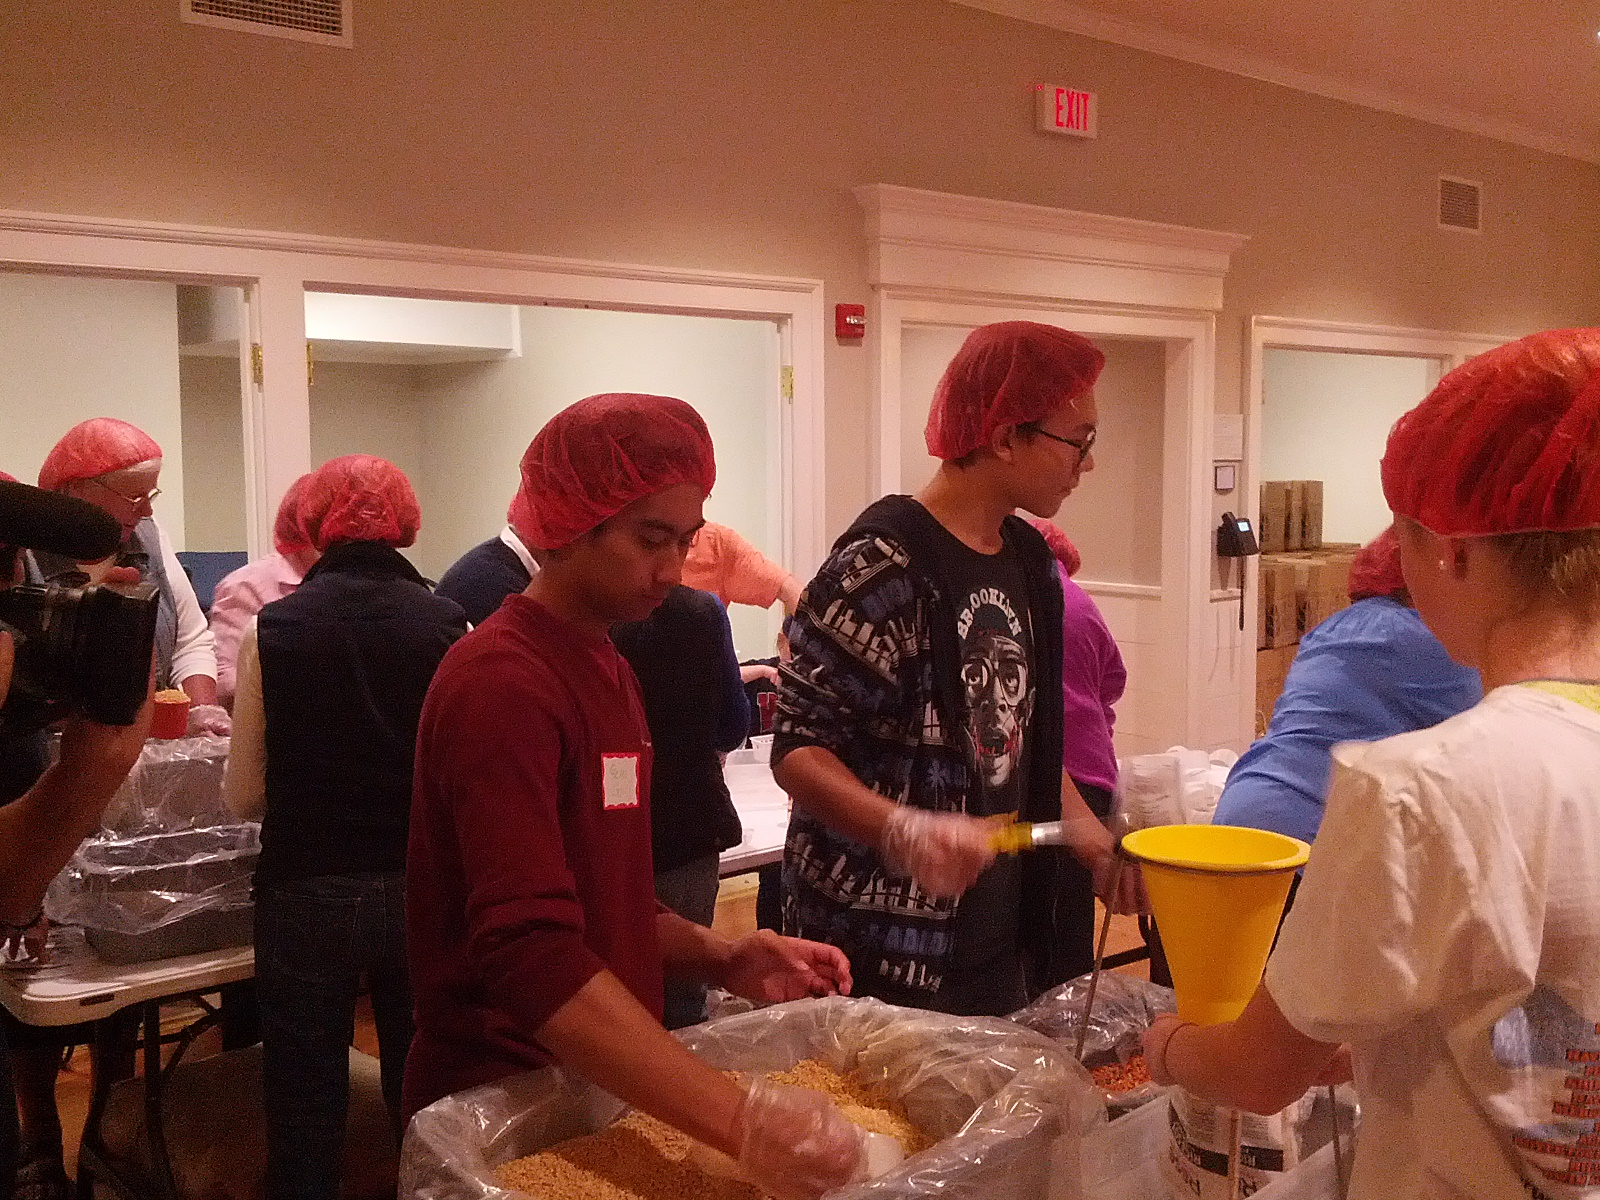 Church Farm School to Pack 100,000 Meals for Rise Against Hunger